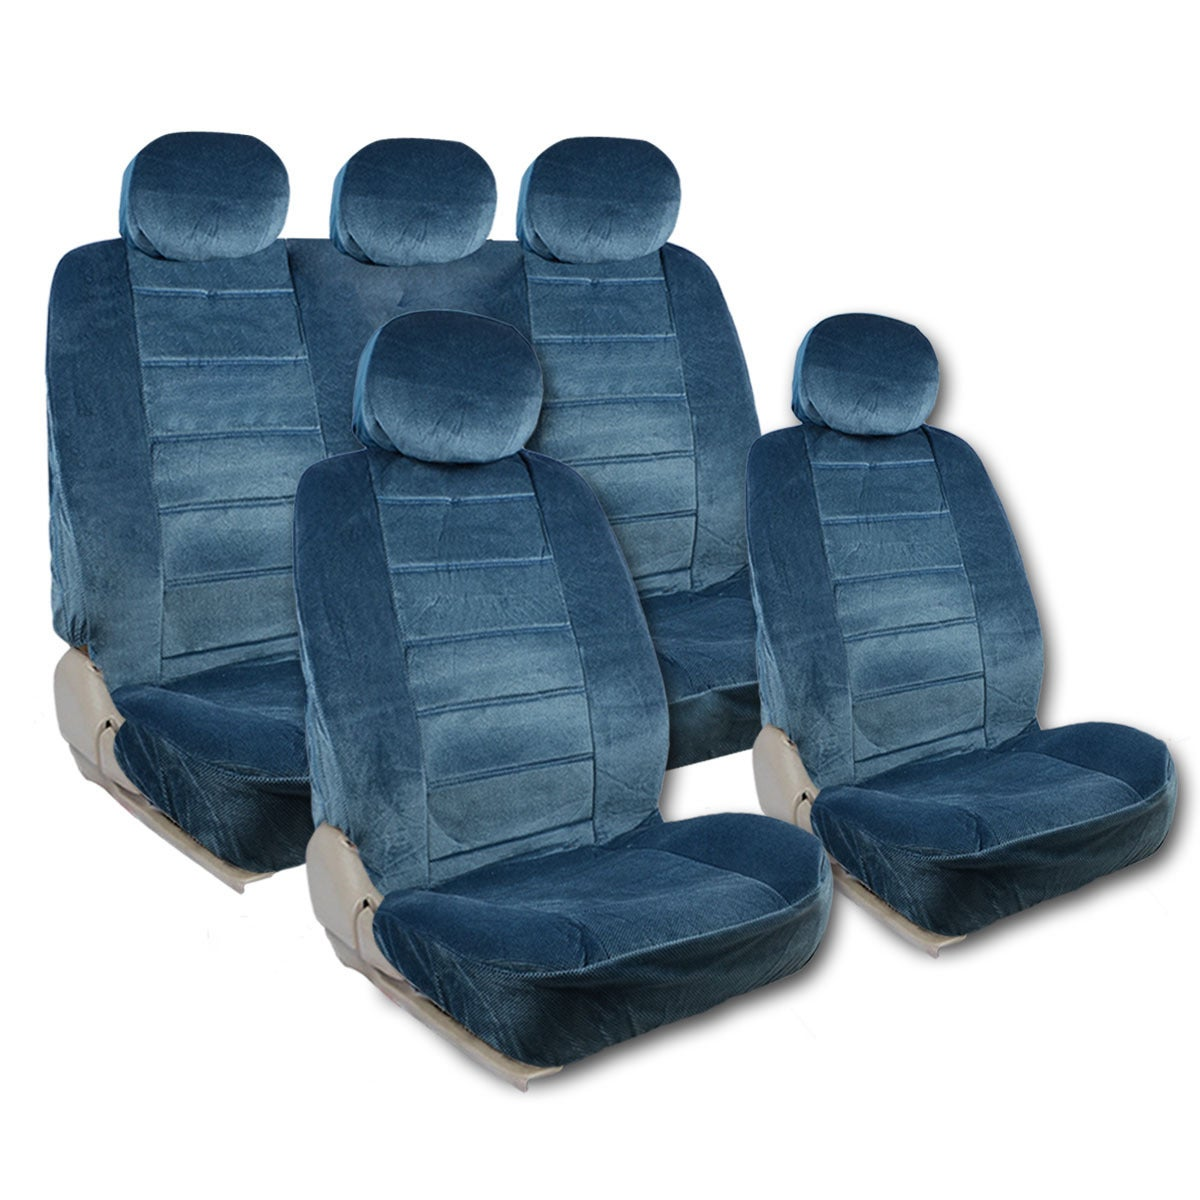 9pc Universal Car Seat Cover Full Set Air Bag Safe Headrests Blue Red Grey